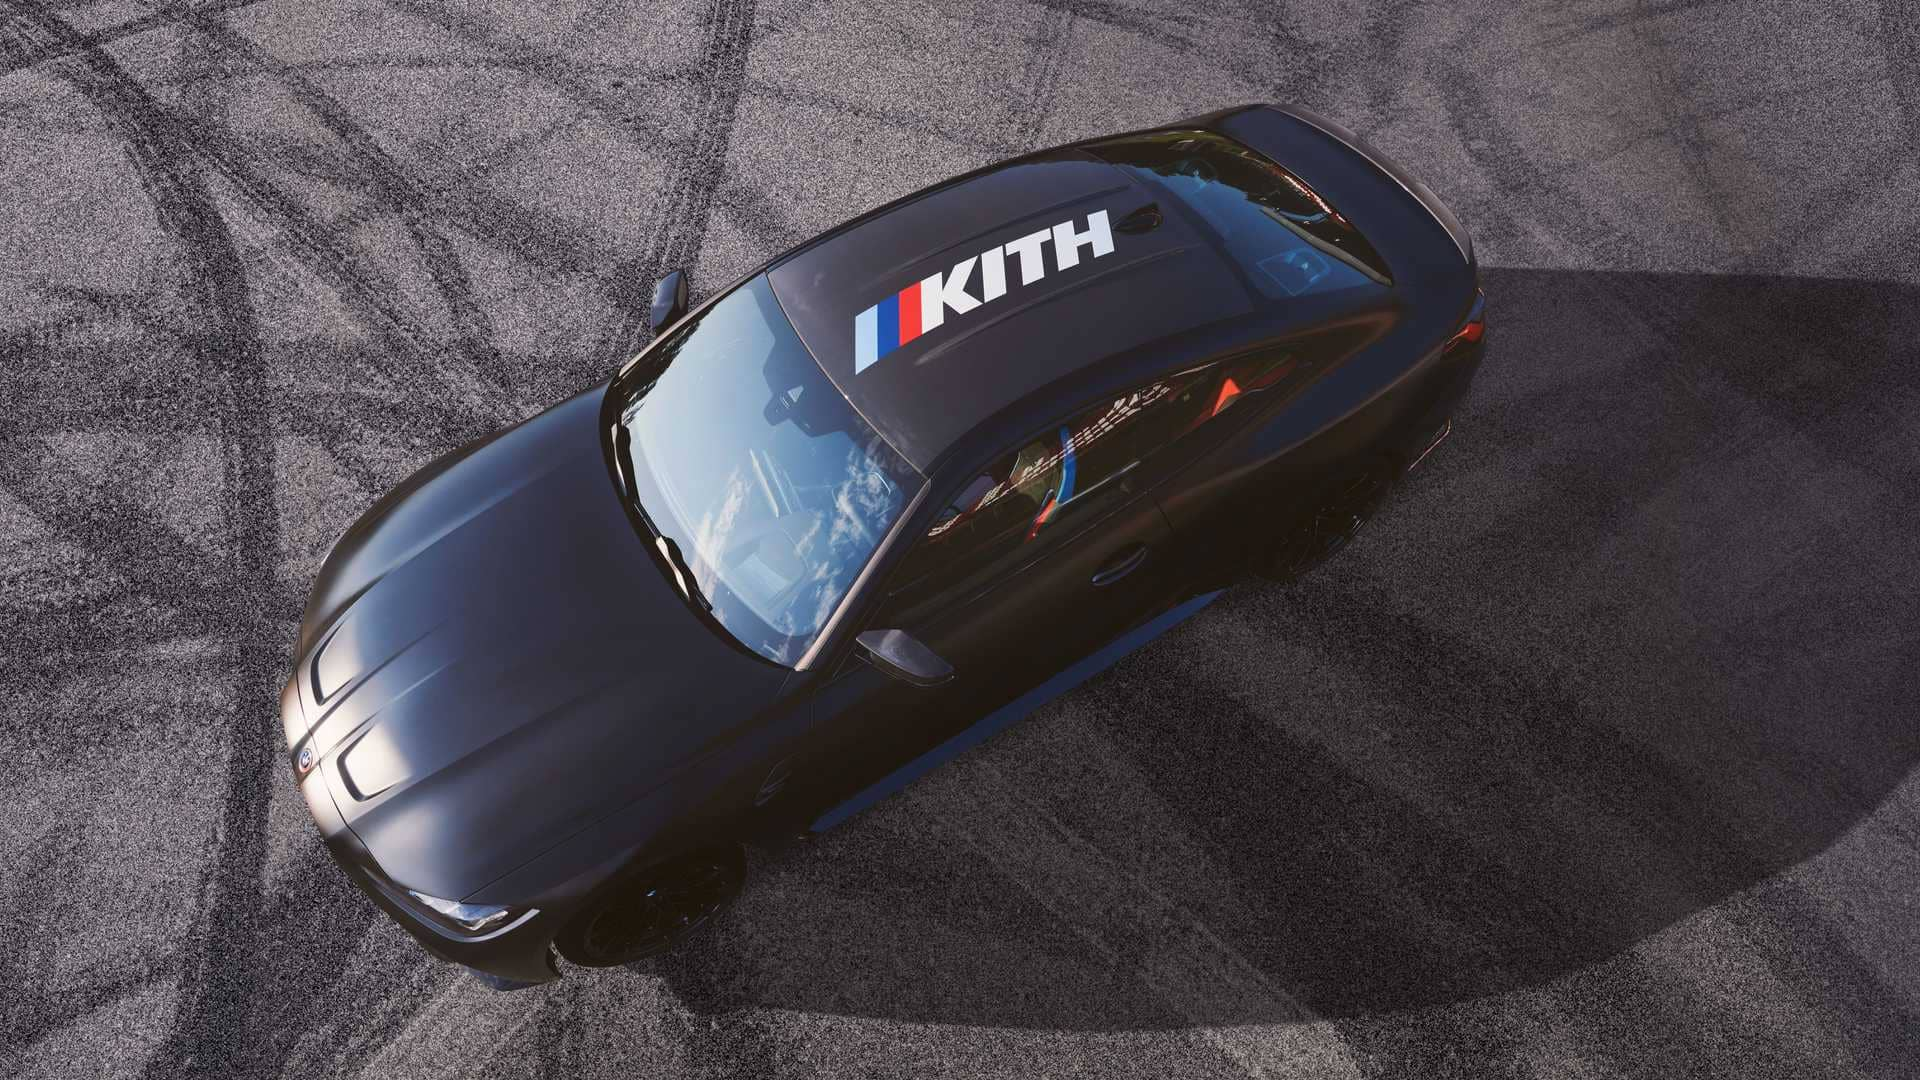 BMW M4 by Kith (32)